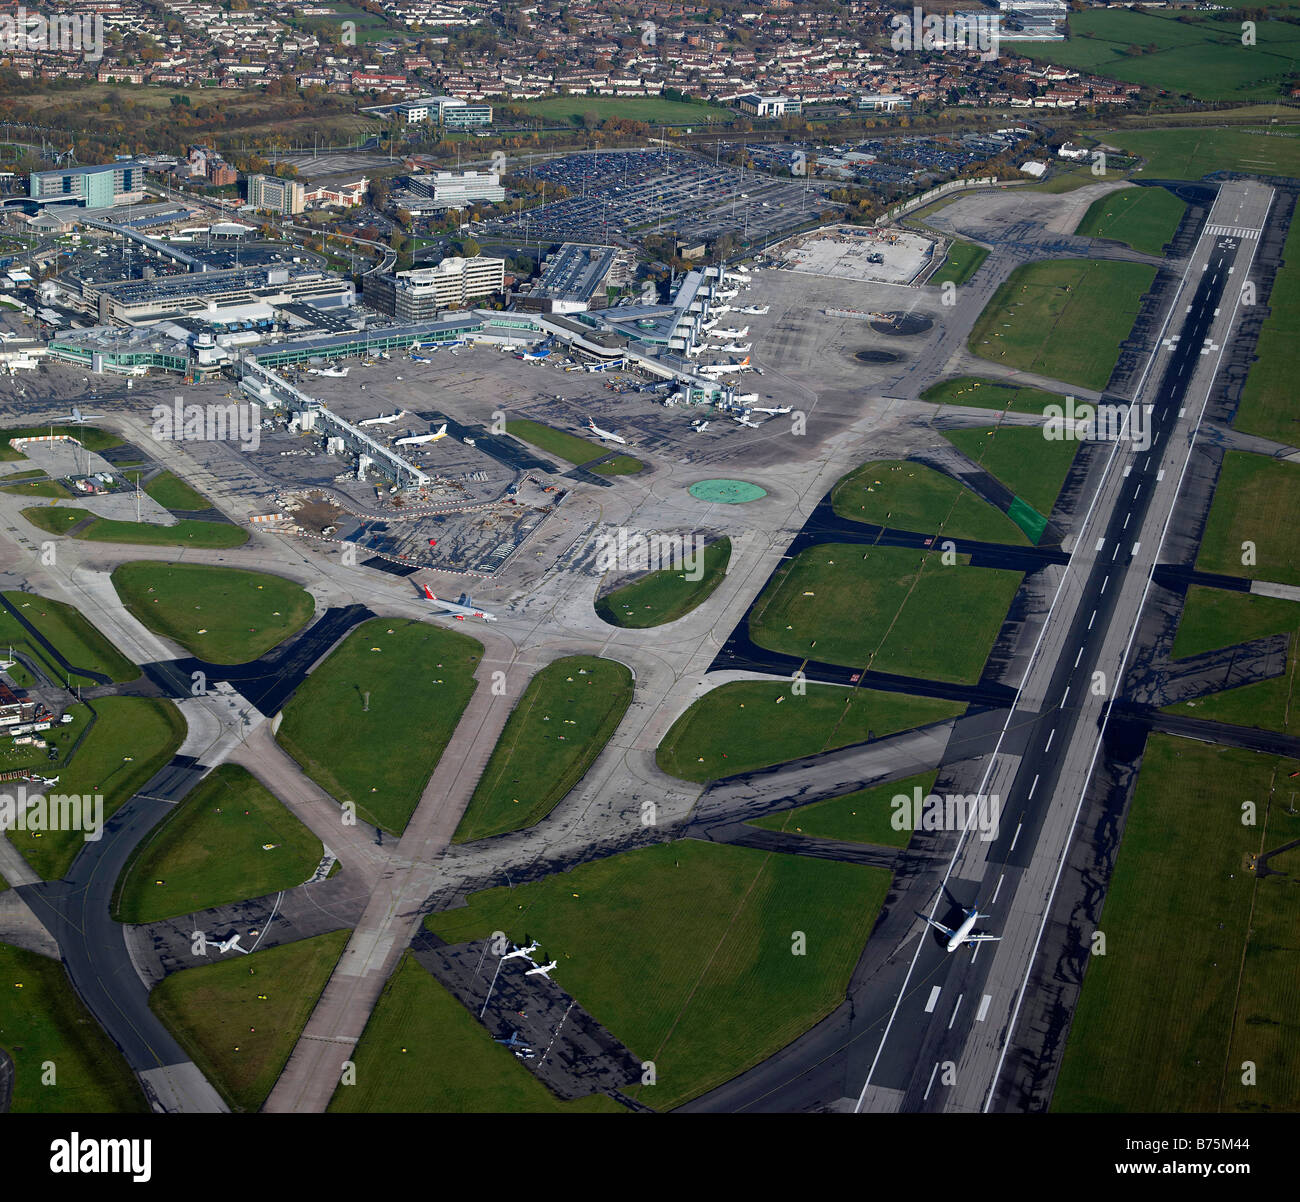 Manchester Airport from the air, Northern England - Stock Image